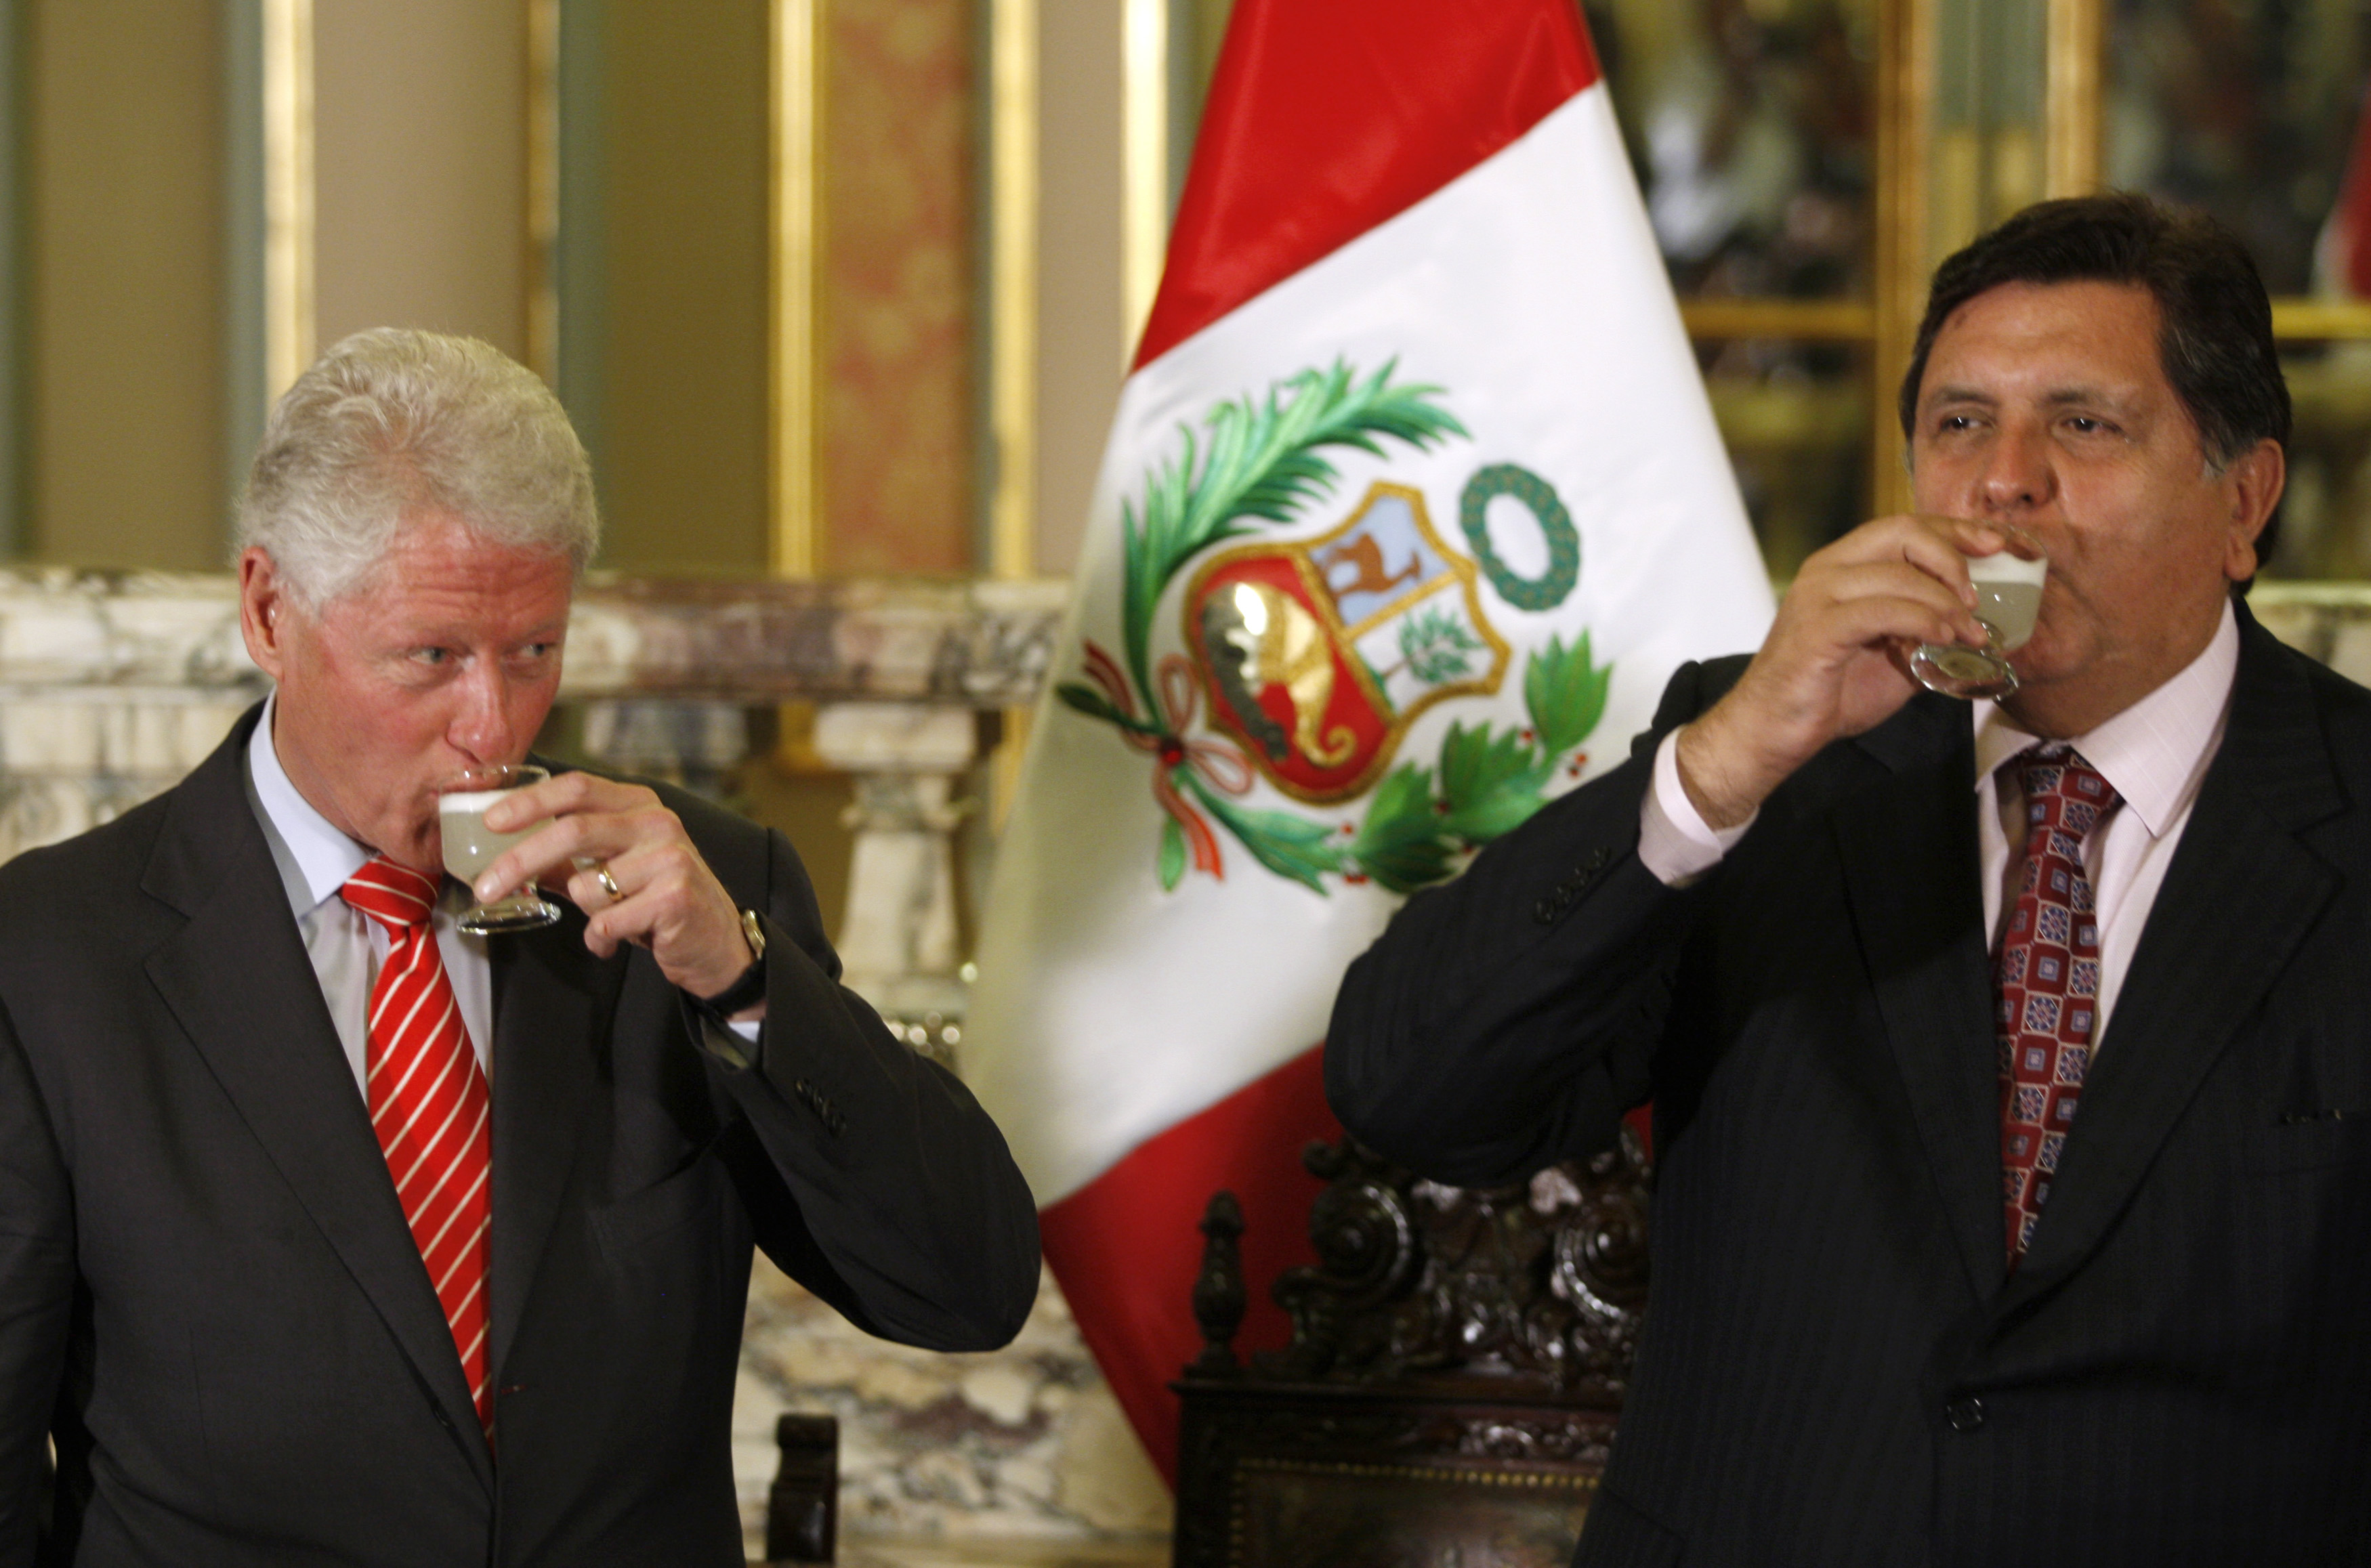 Peru's President Garcia and former US President Clinton drink Pisco Sour after a meeting at the government palace in Lima